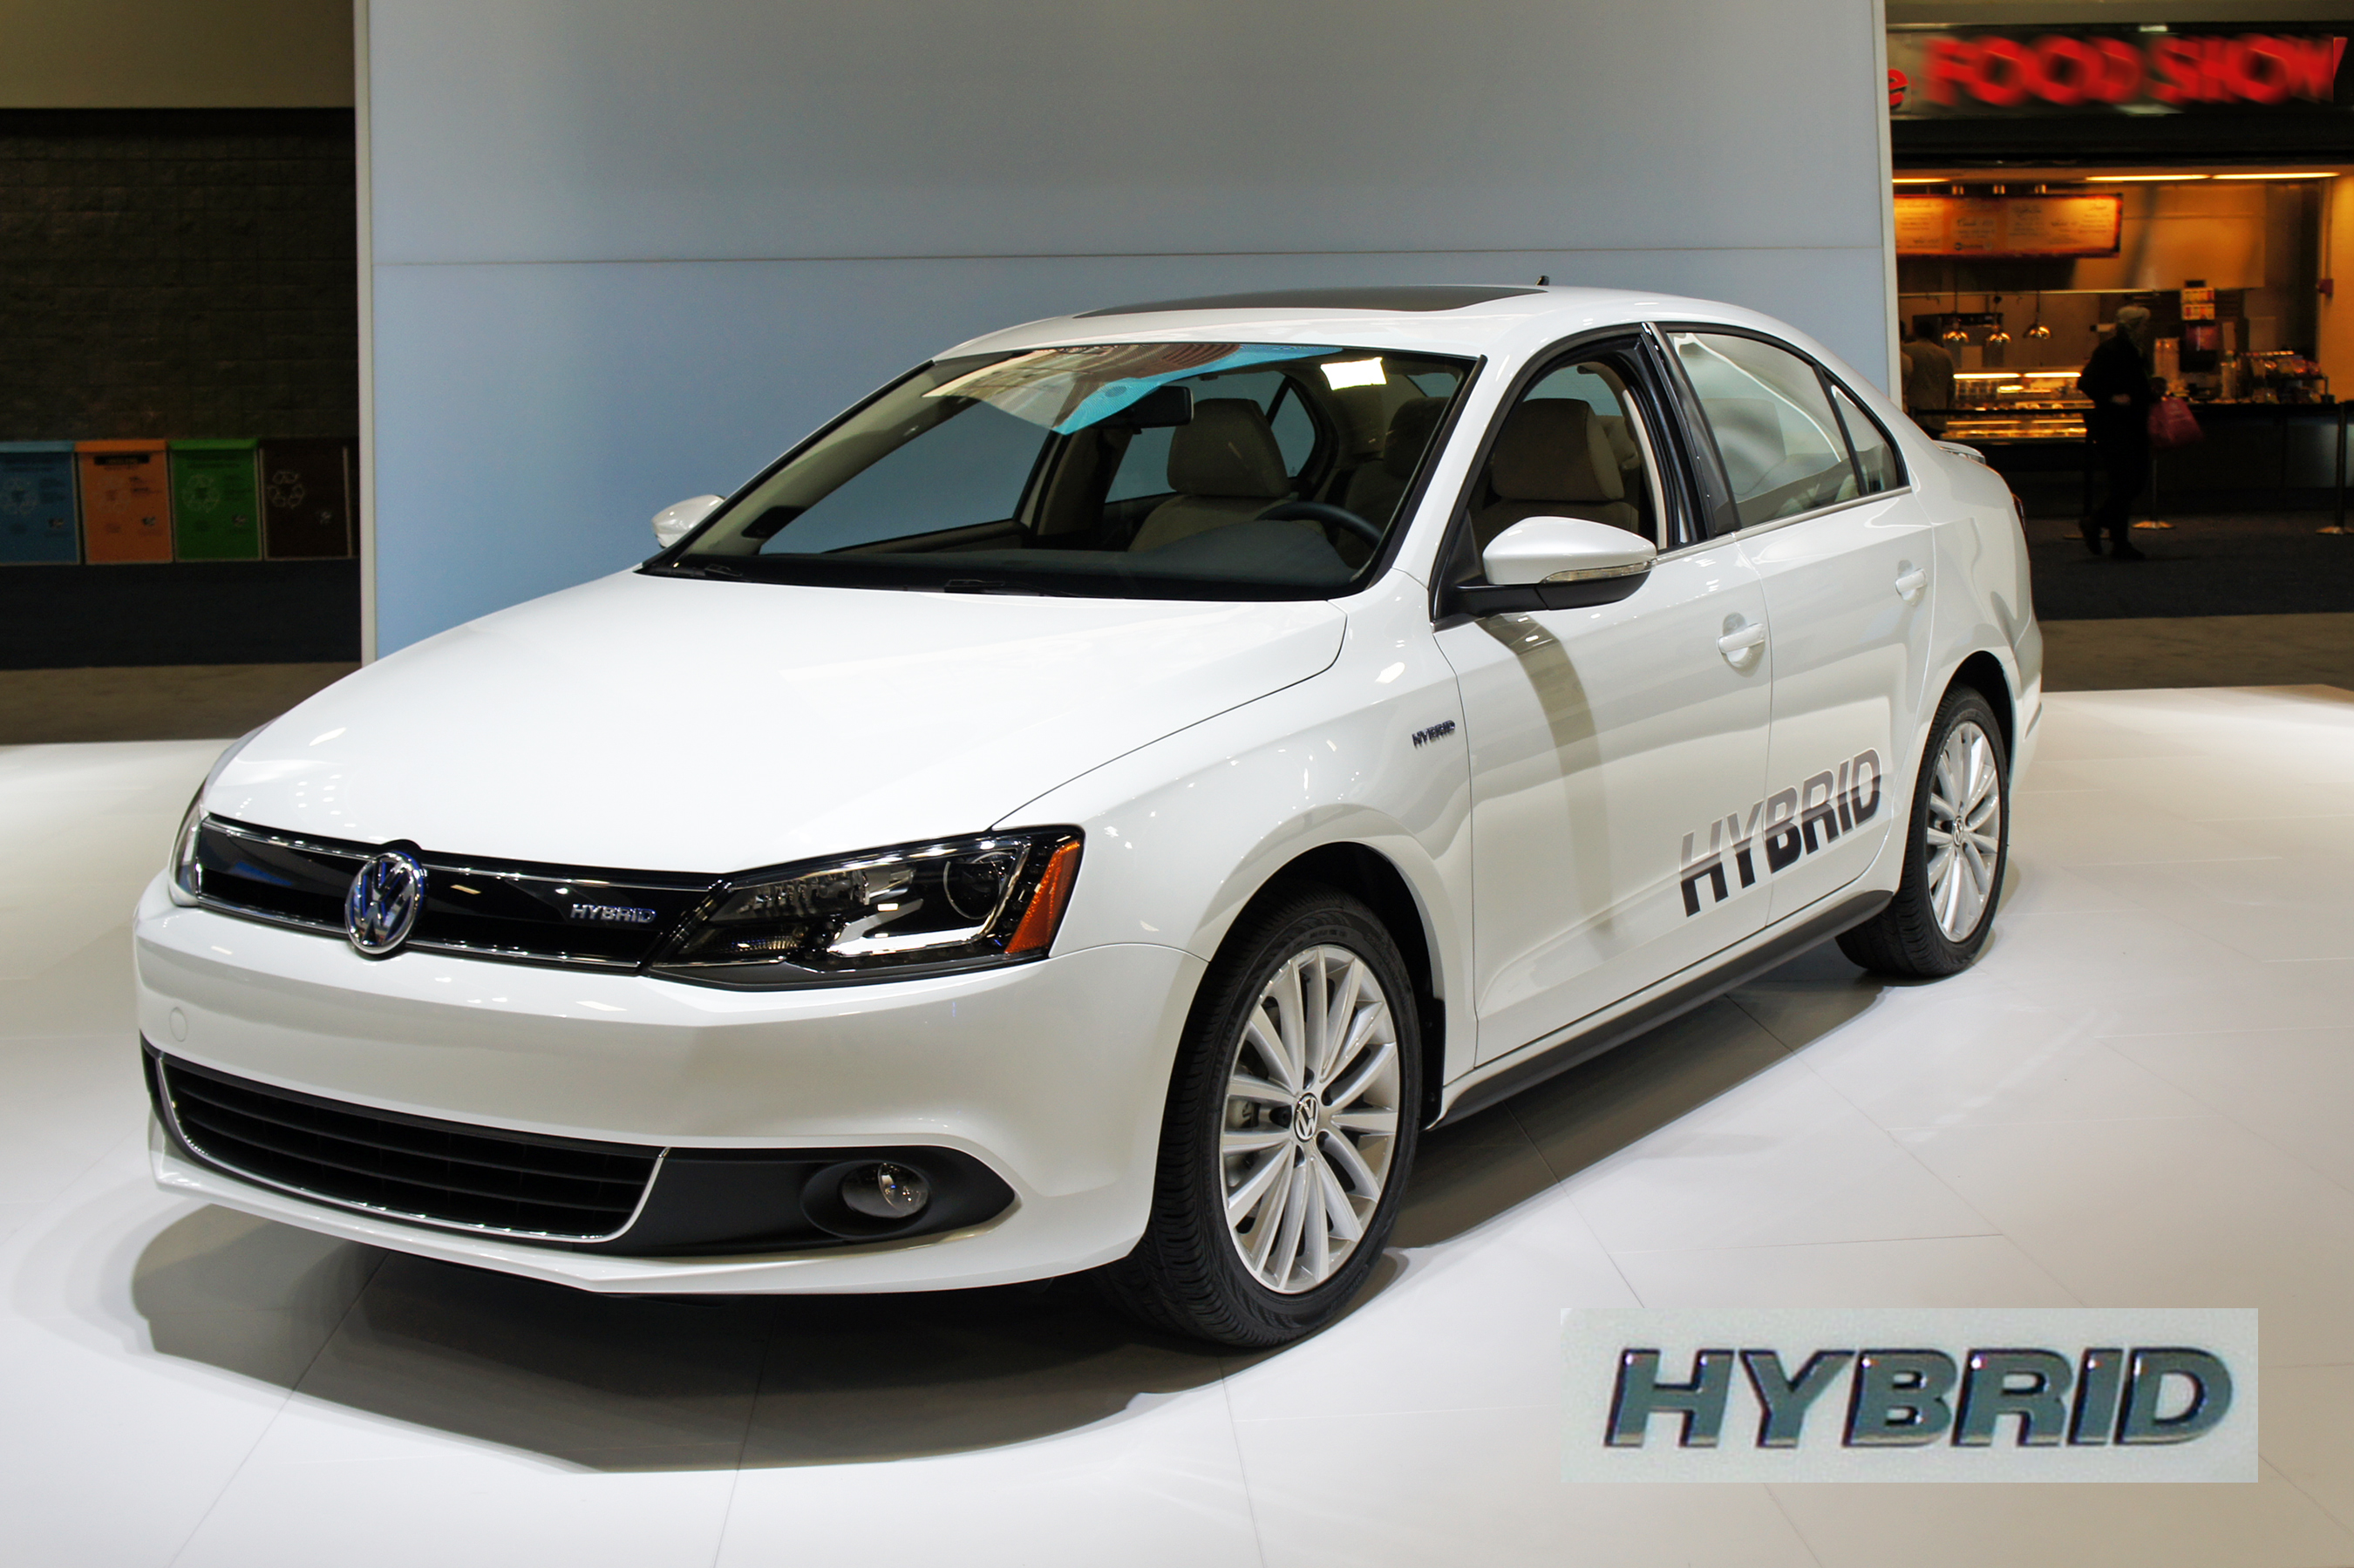 Hybrid Car Energy Education